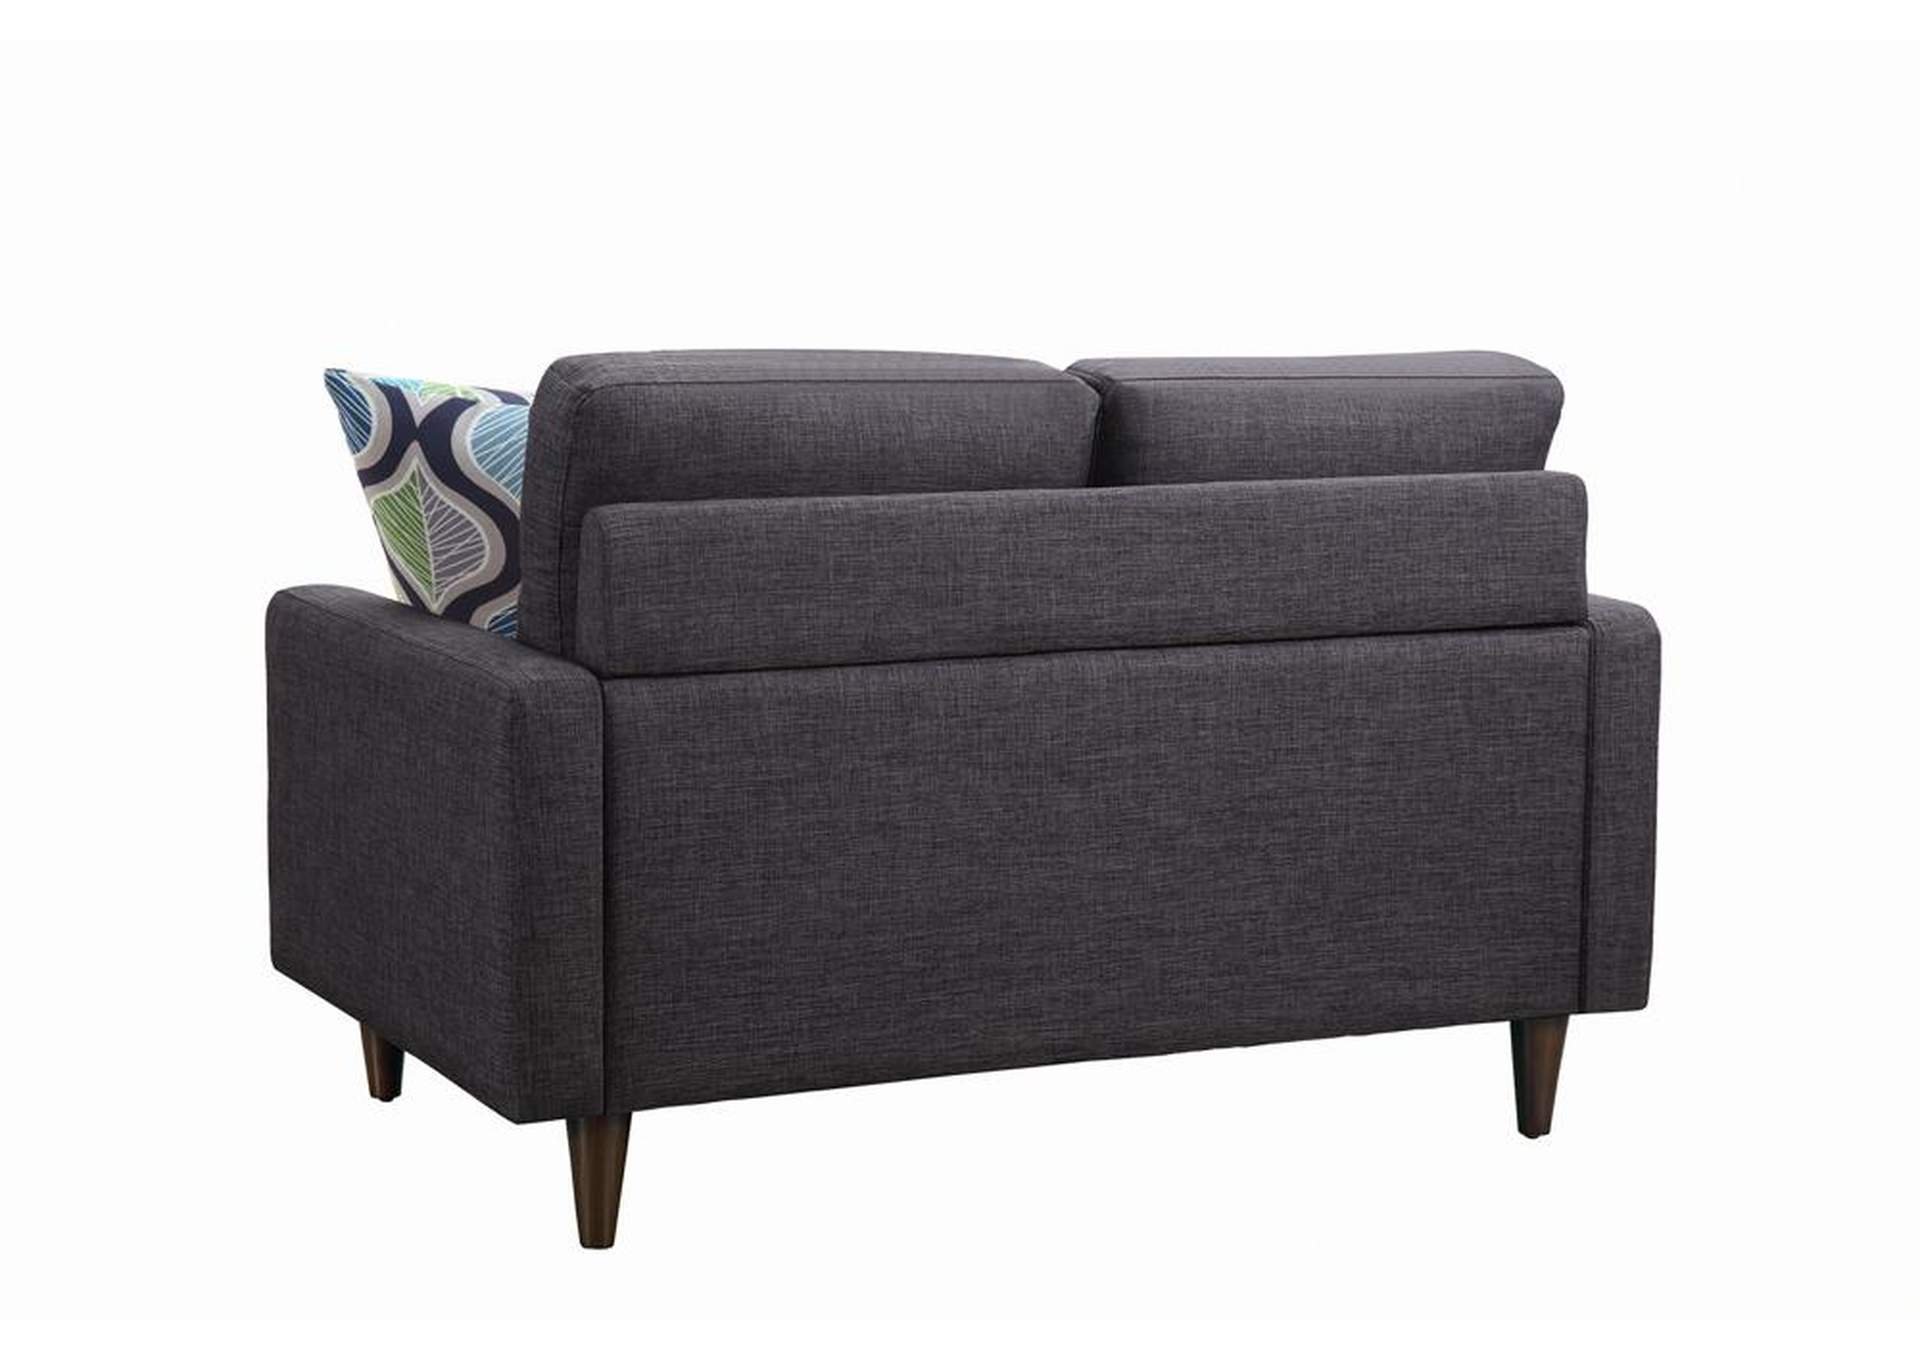 Thunder Watsonville Retro Grey Loveseat,Coaster Furniture